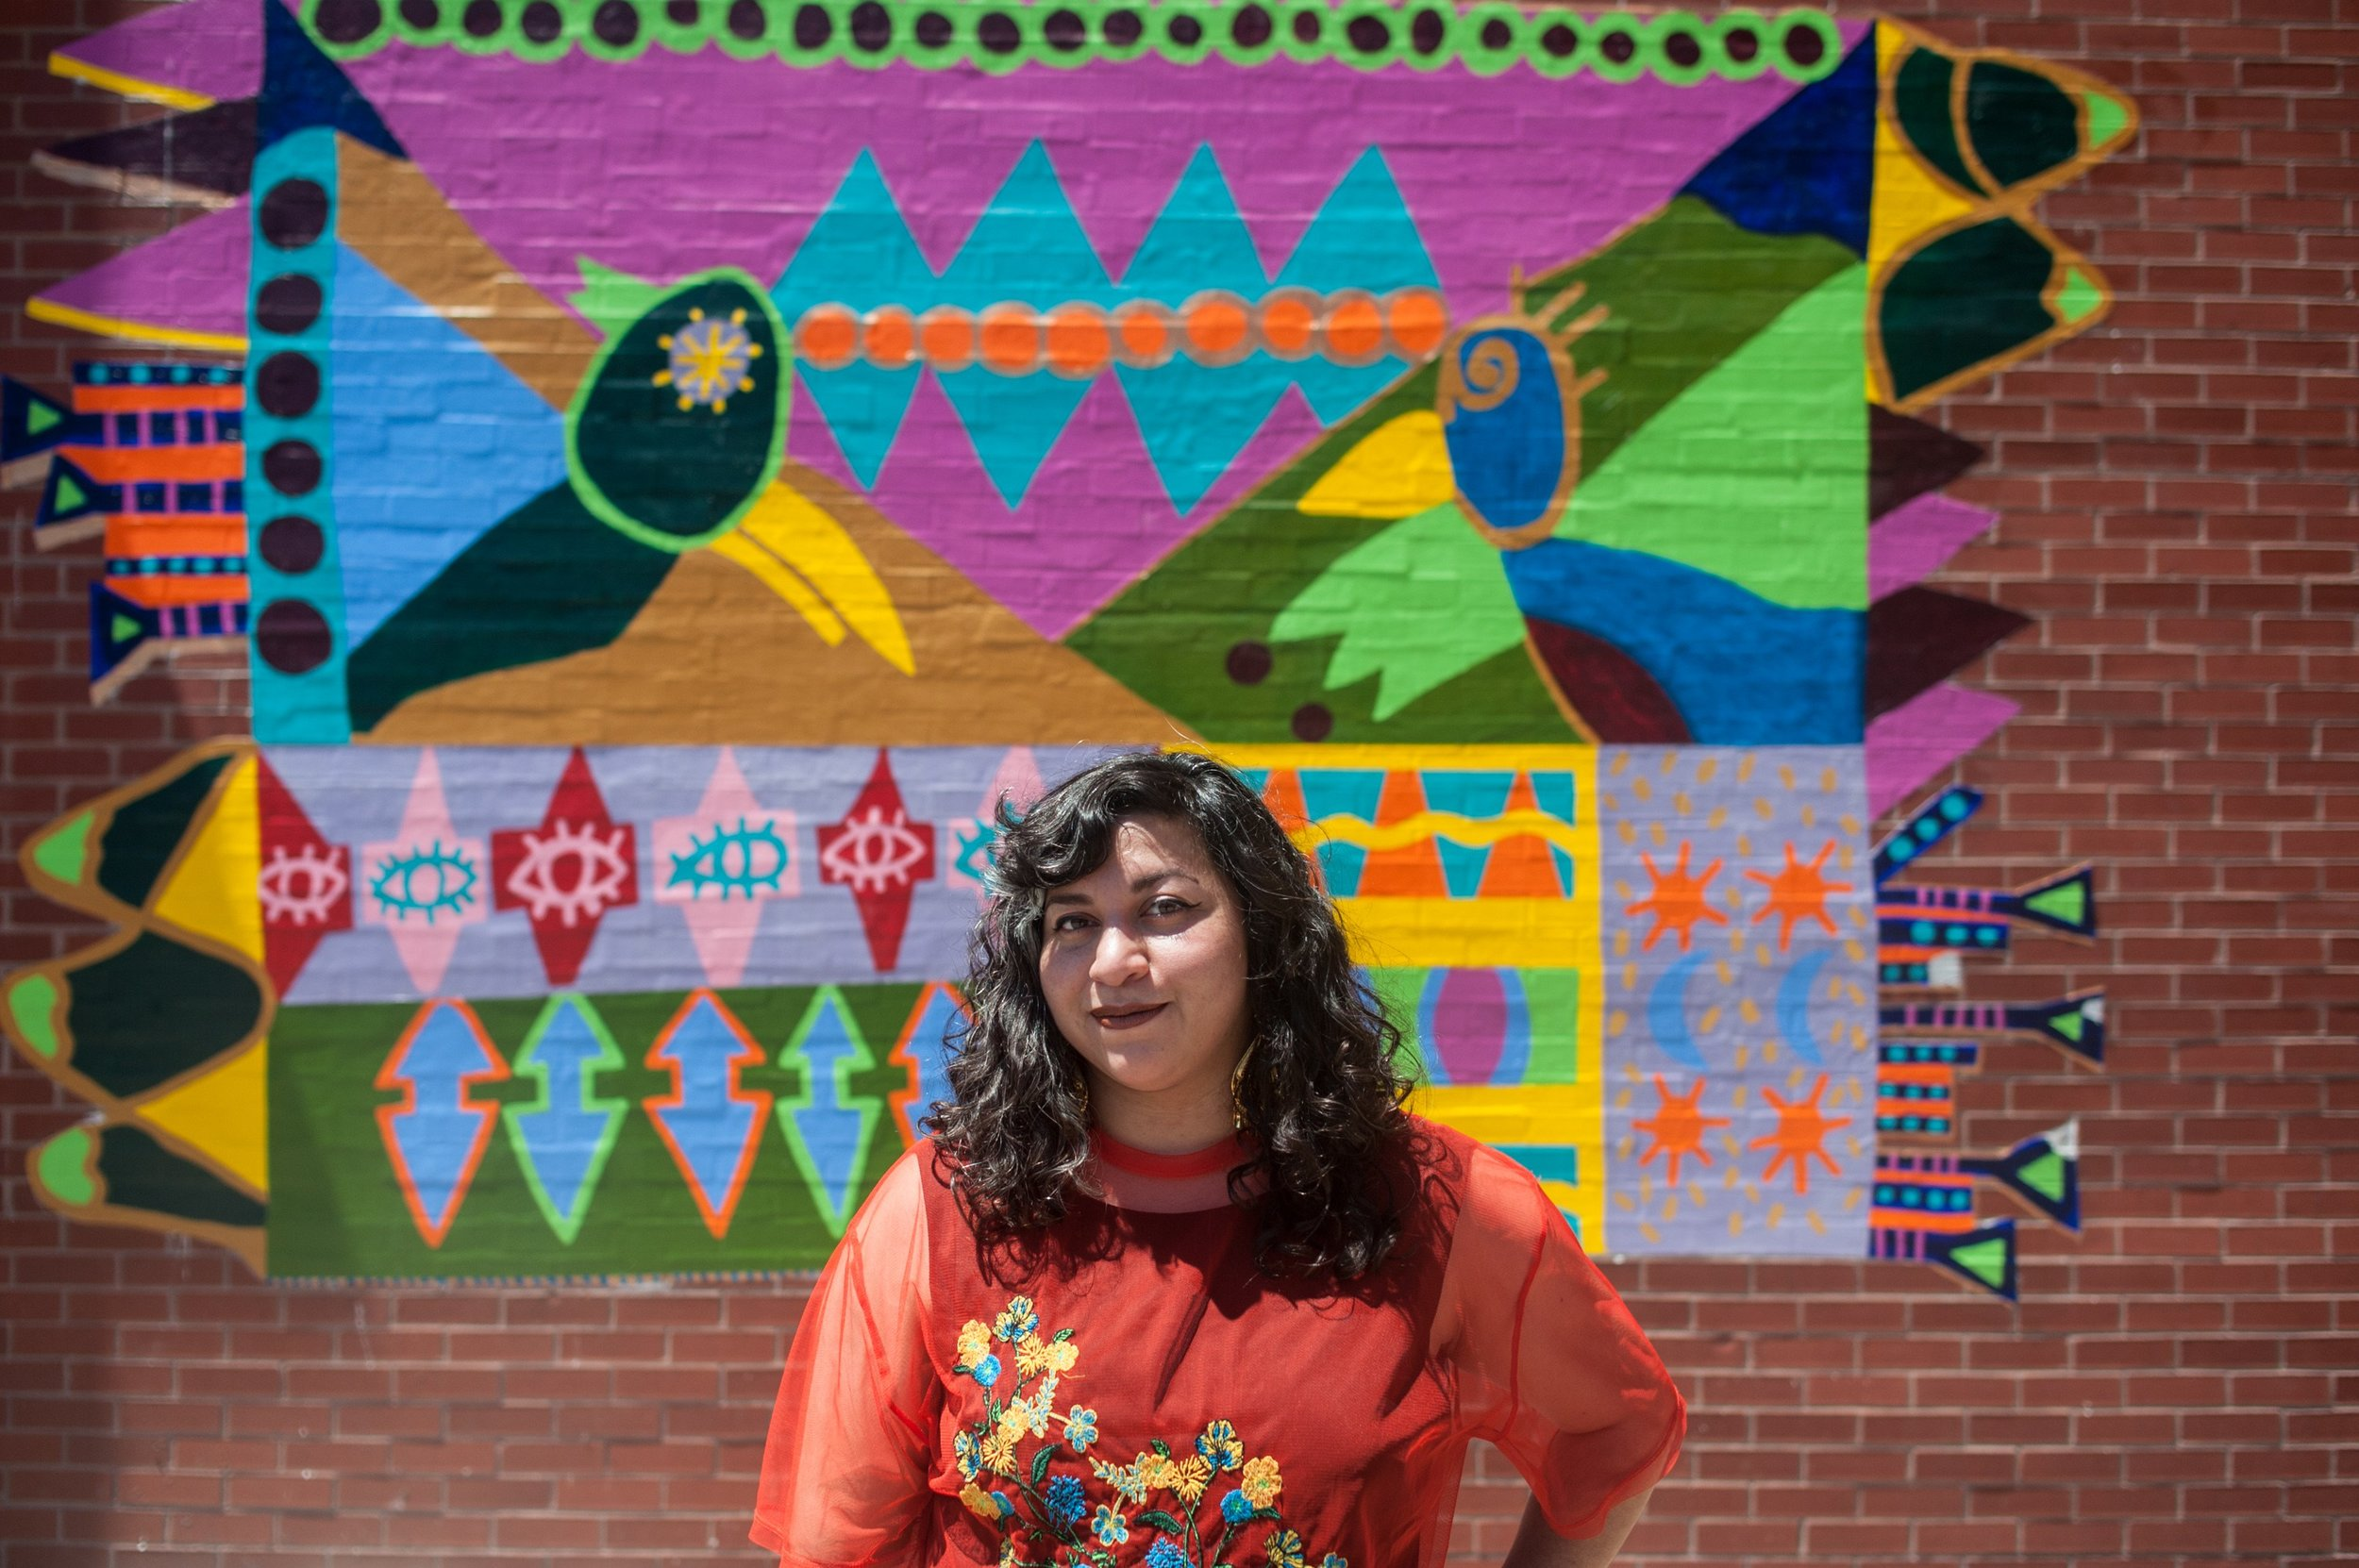 """Featured Image:Victoria Martinez standing in front Pickard Elementary in Pilsen near a mural she painted collaboratively with 5th thru 7th graders from the school. The mural """"Championing Neighborhood Memories"""" was inspired by the permanent collection from the National Museum of Mexican Art and is located on the Pickard playground. Martinez, who attended the school from Kindergarten thru 8th grade, recurrently works with these students. Photo by William Camargo."""